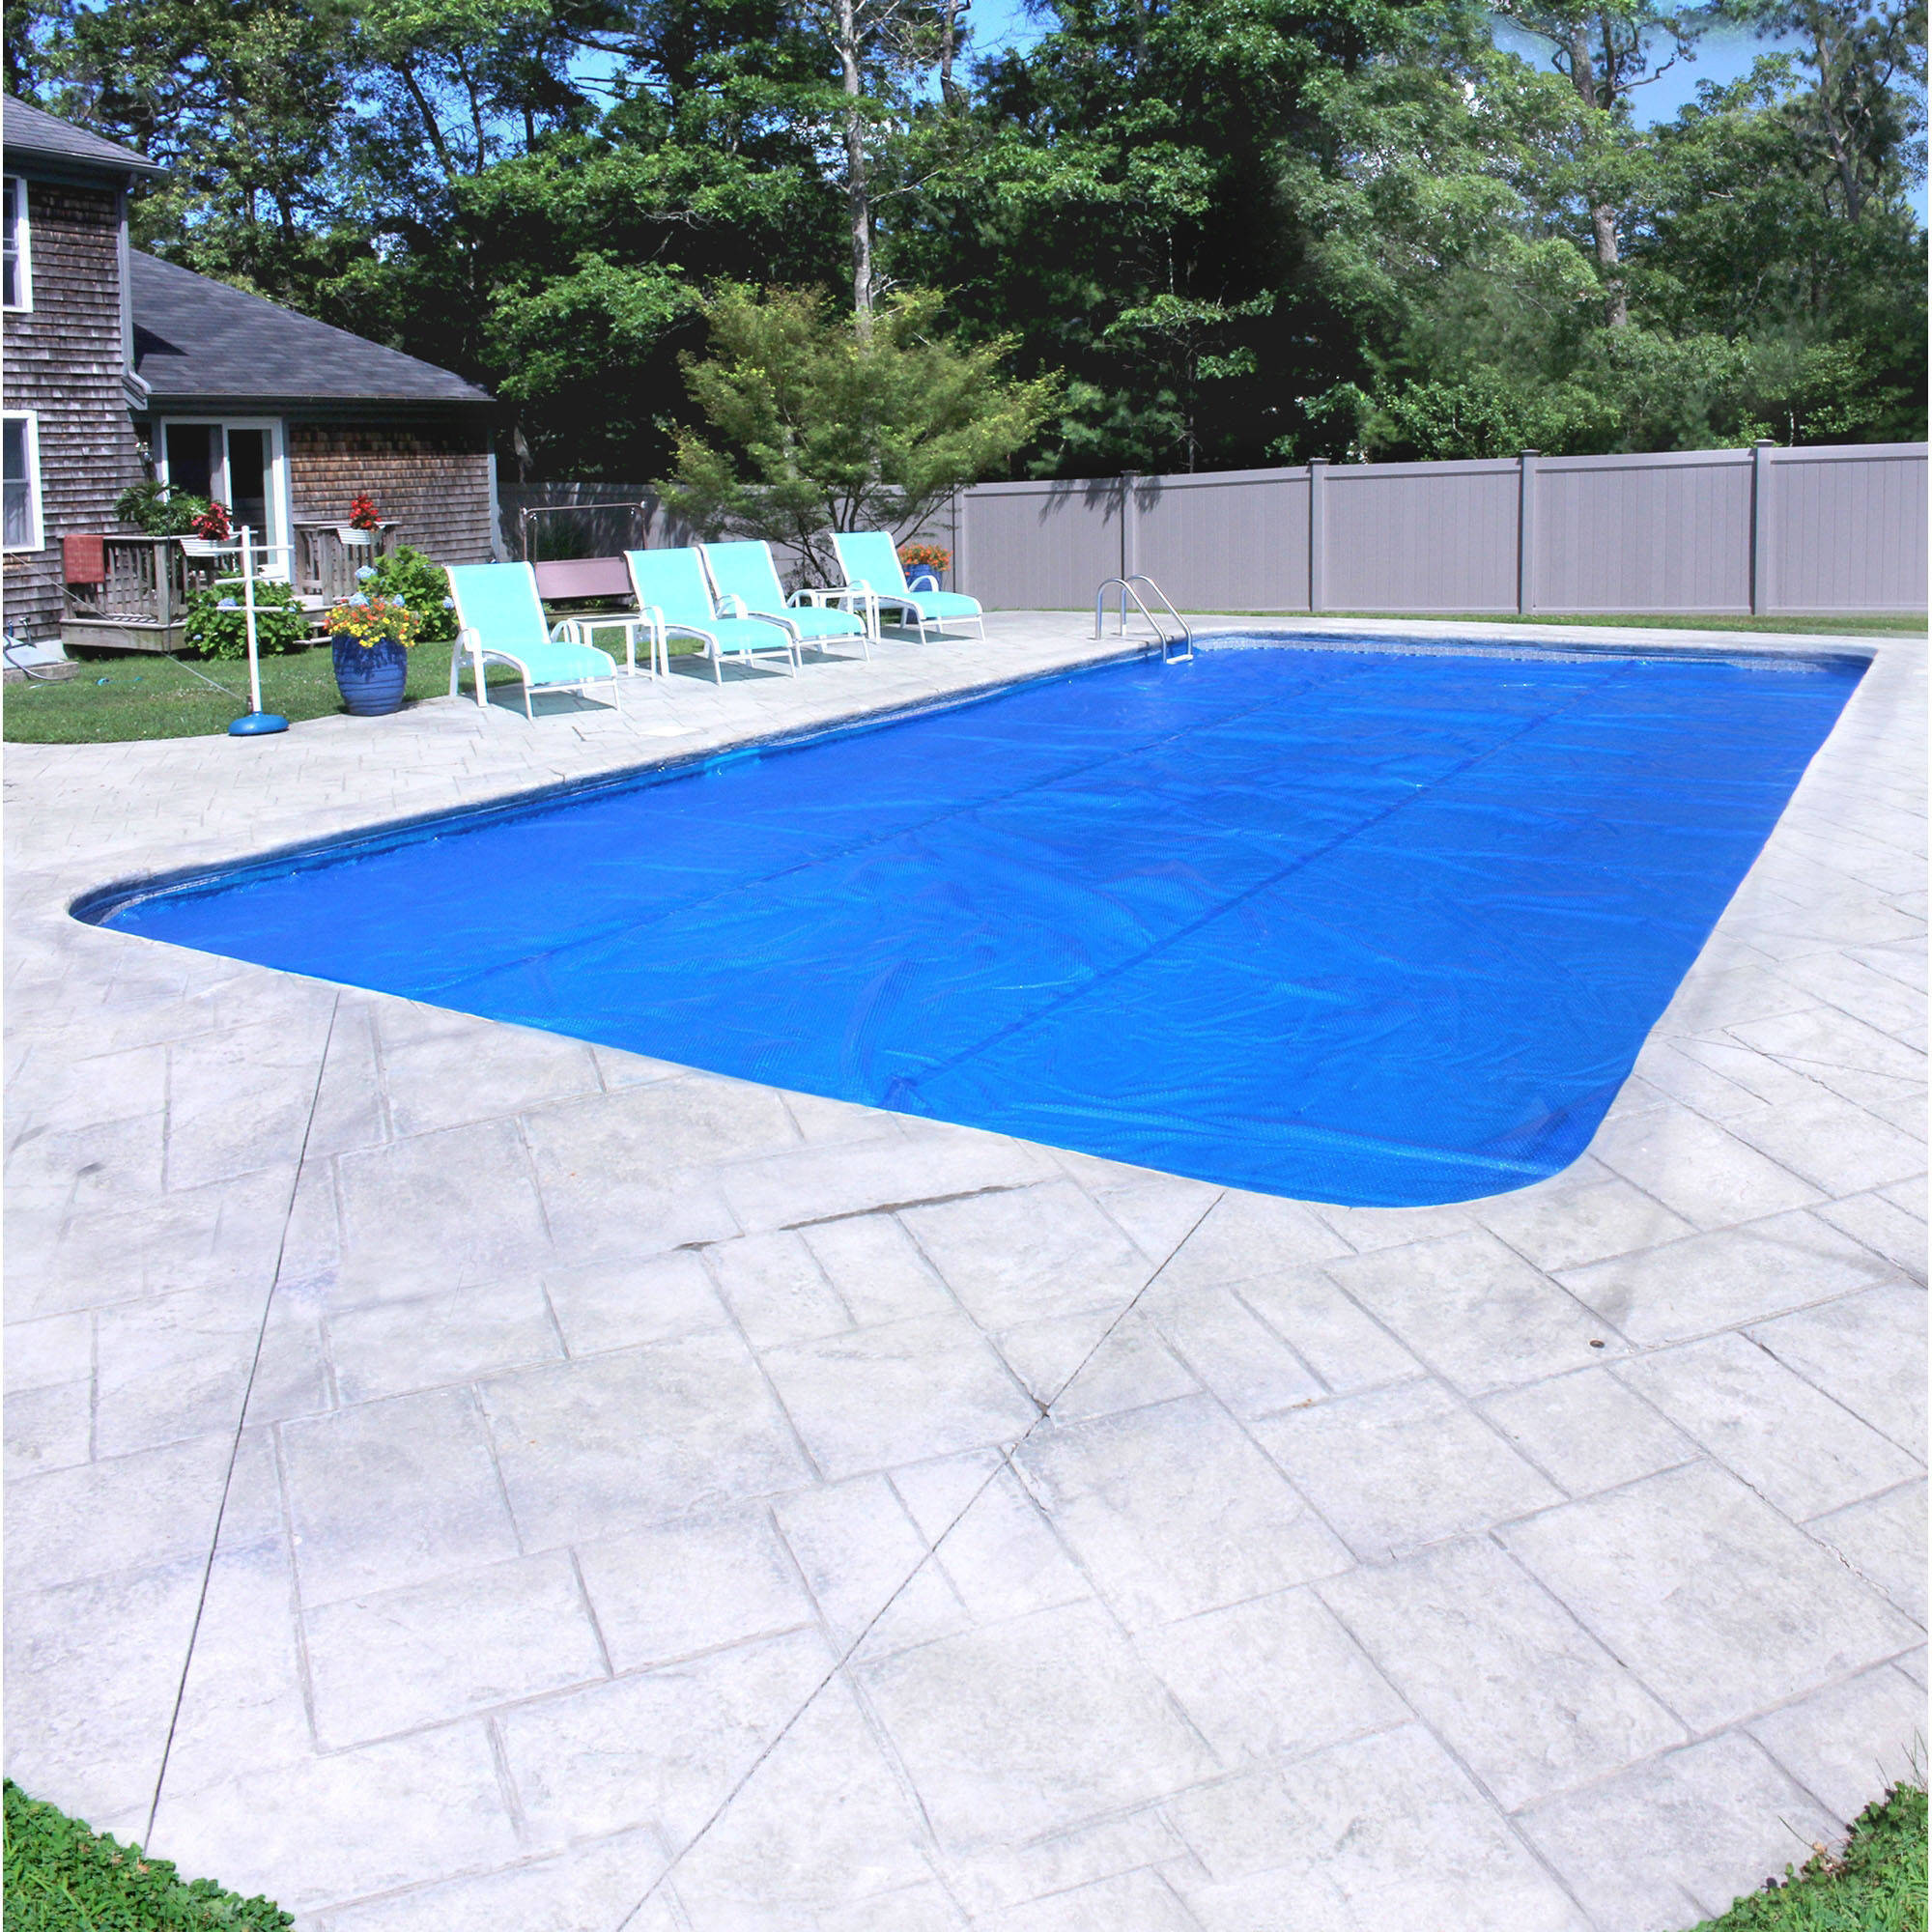 Pool Mate Deluxe 5-Year Blue/Silver Solar Blanket for In-Ground Swimming Pool